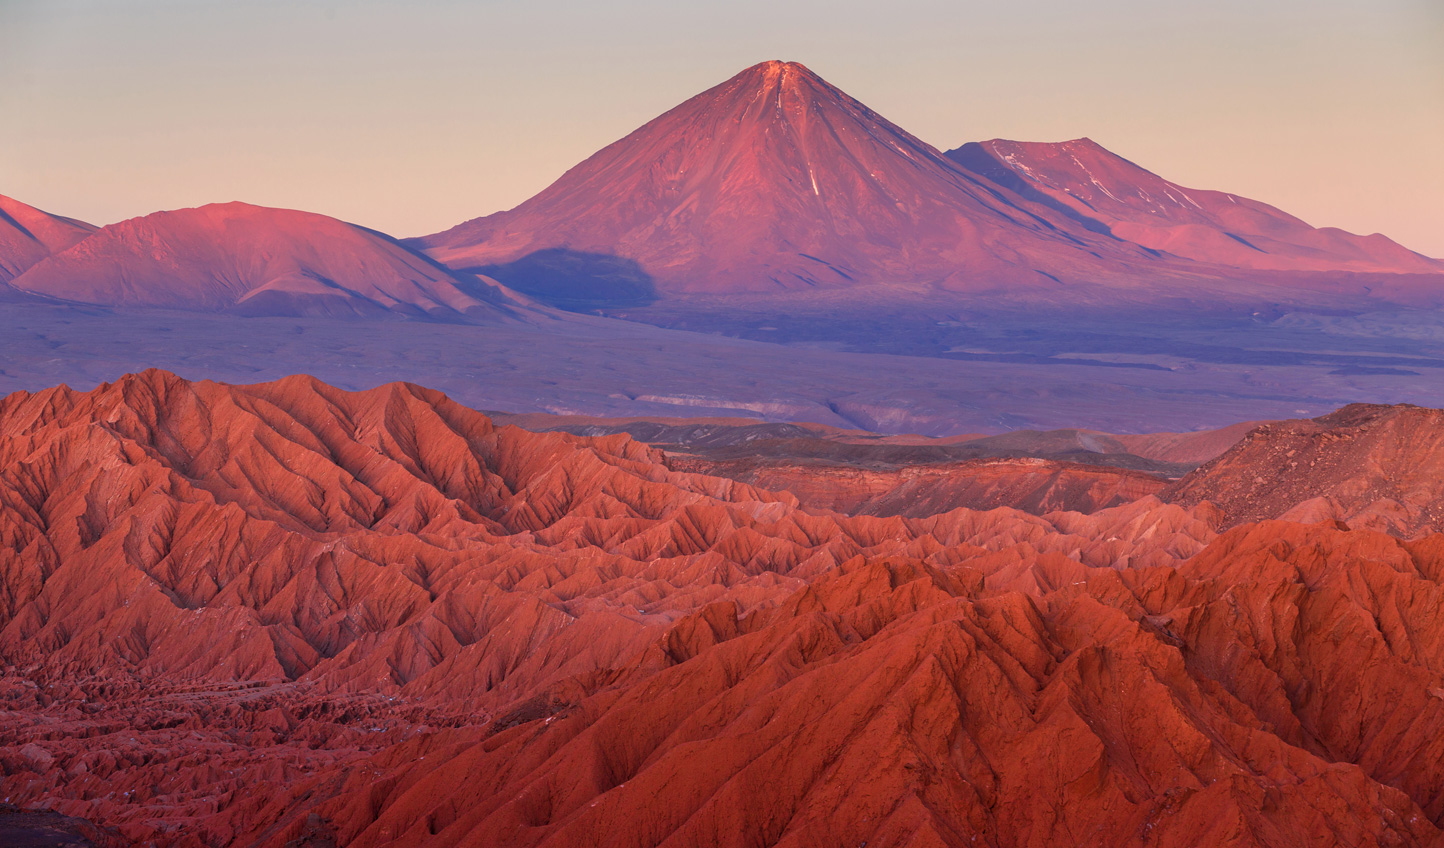 Watch the way the sun paints the desert mountains pink and orange